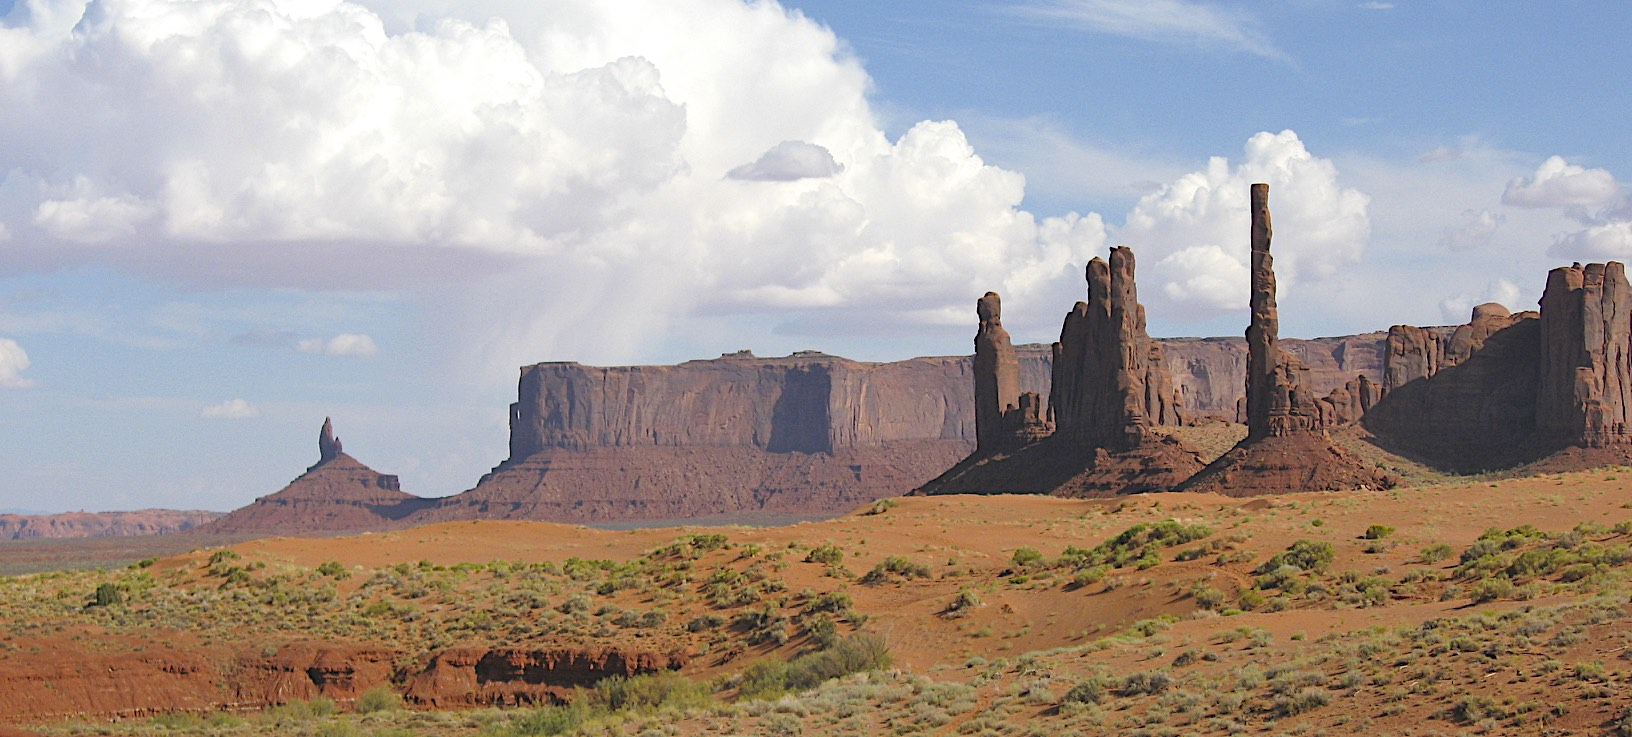 The Totem pole in The Monument Valley in the Navajo Tribal Lands